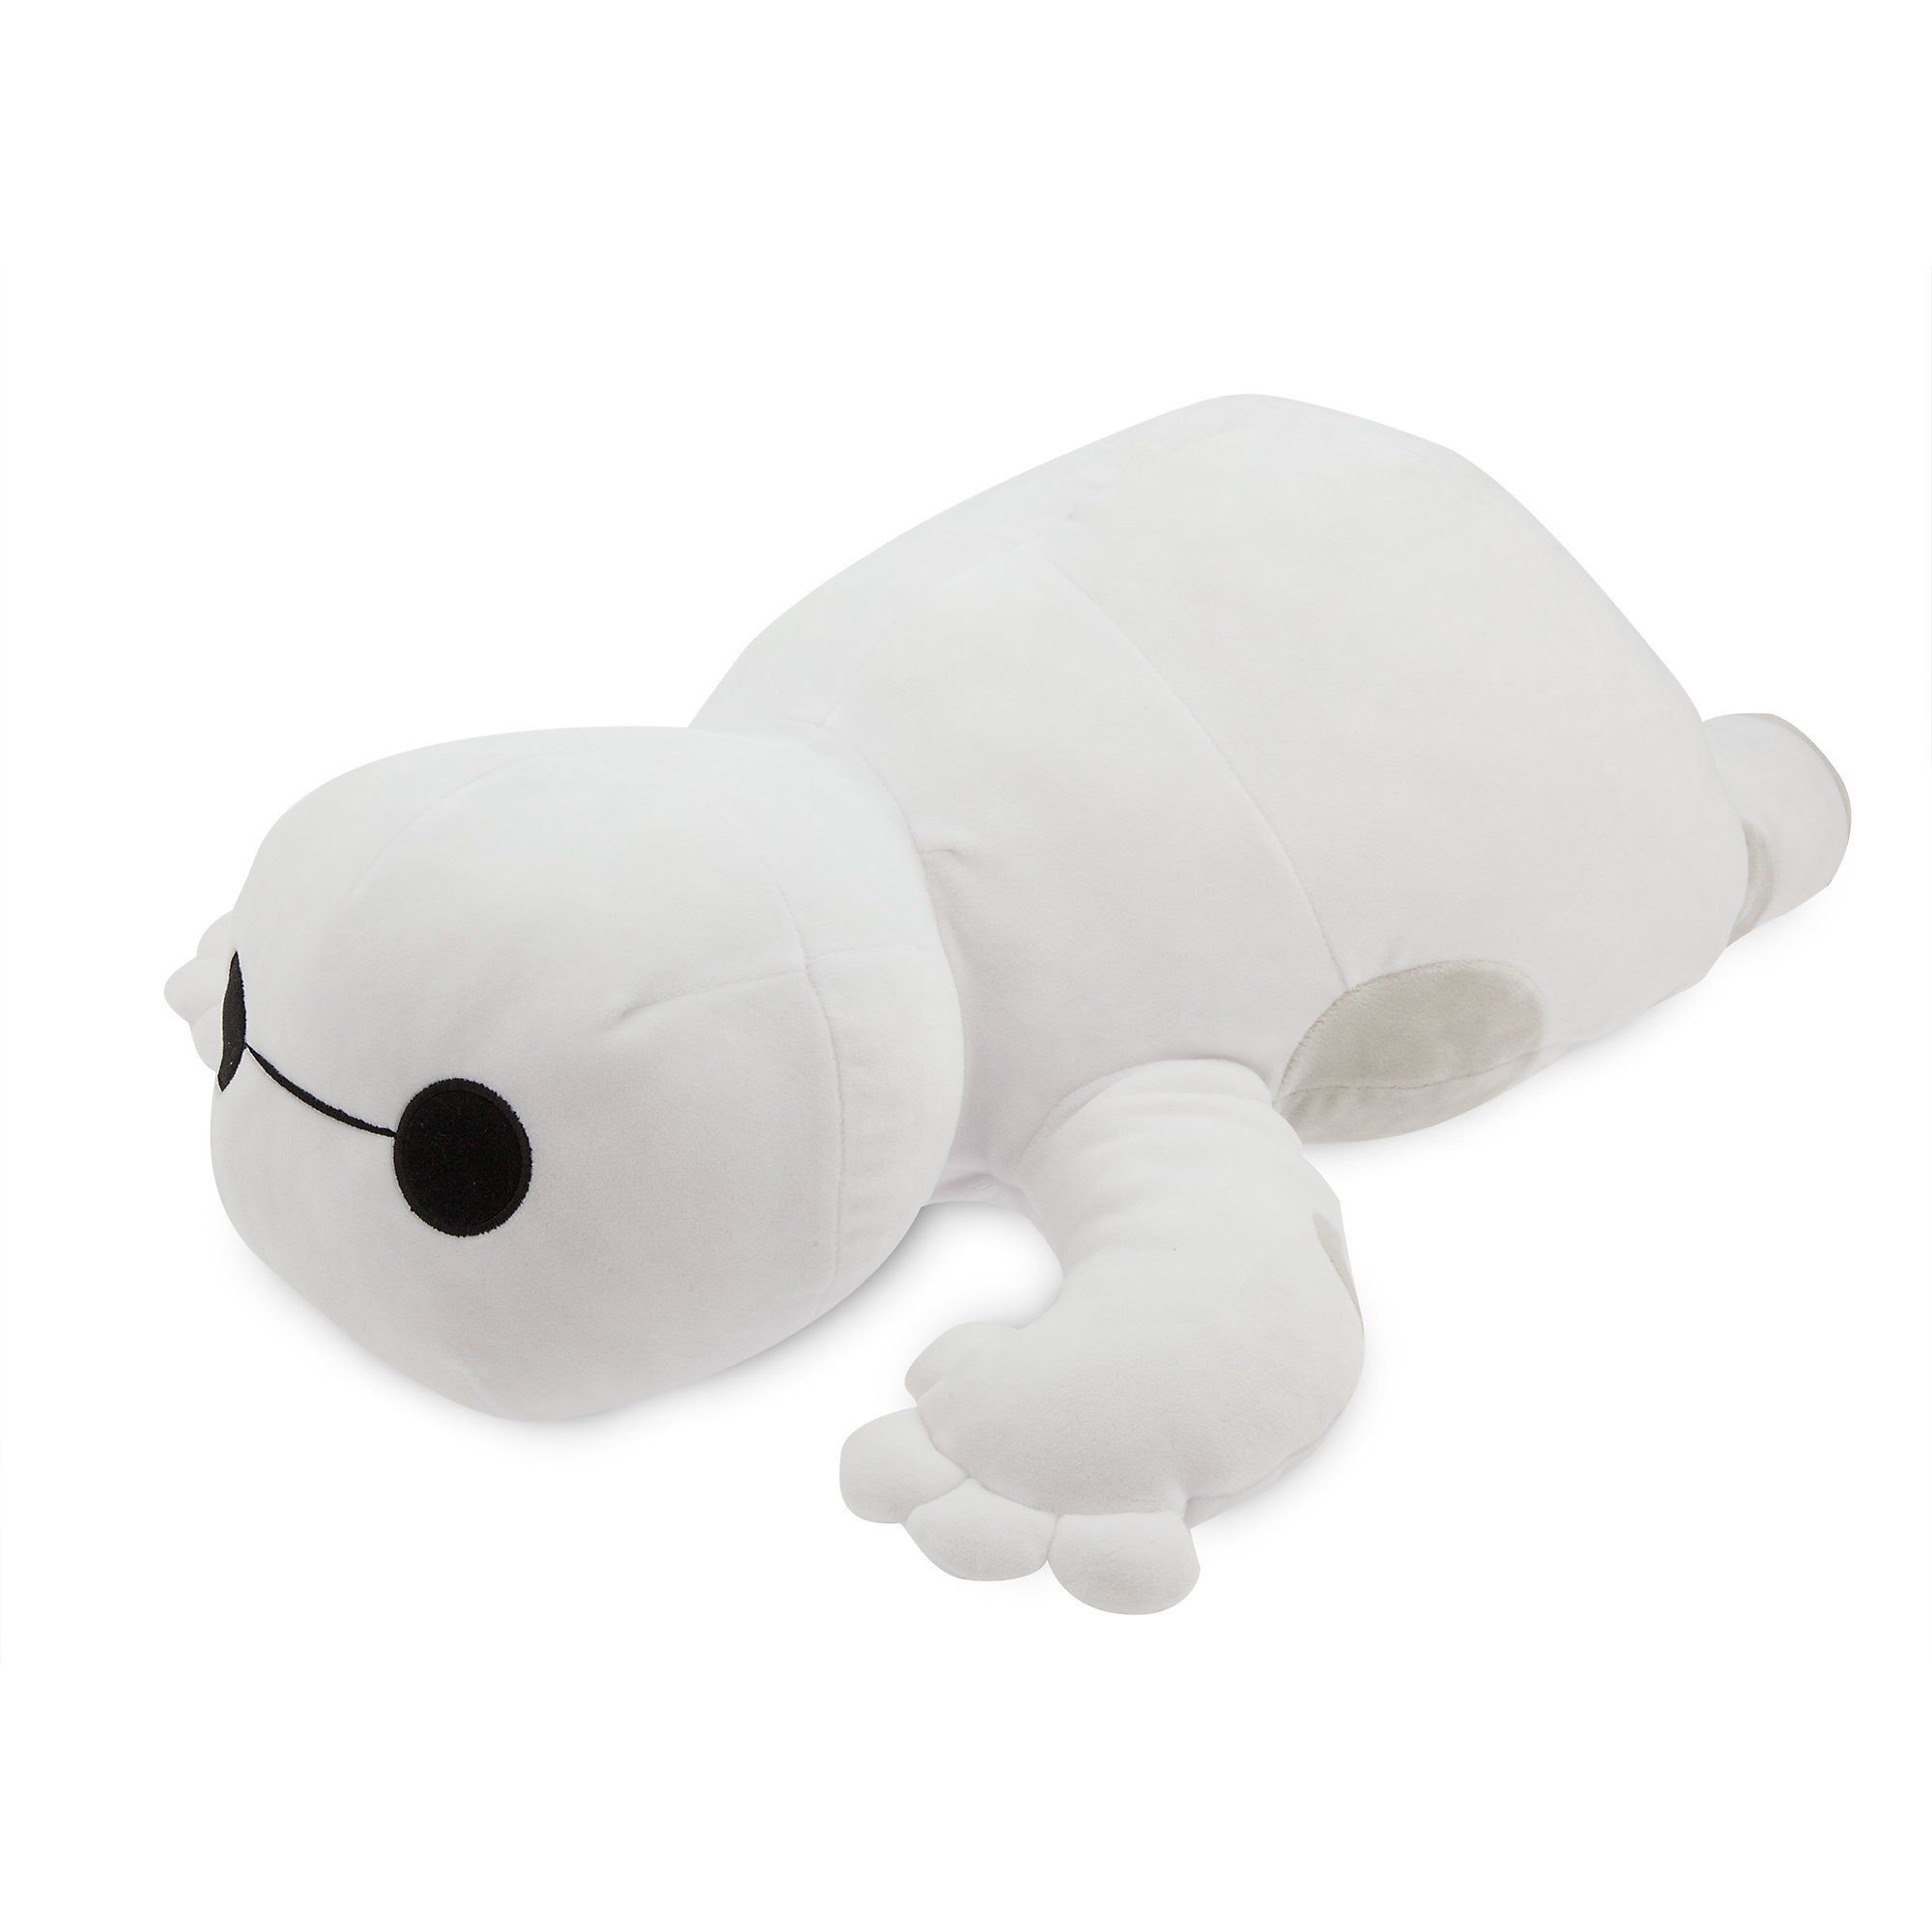 Disney Baymax Plush Floor Pillow - Big Hero 6